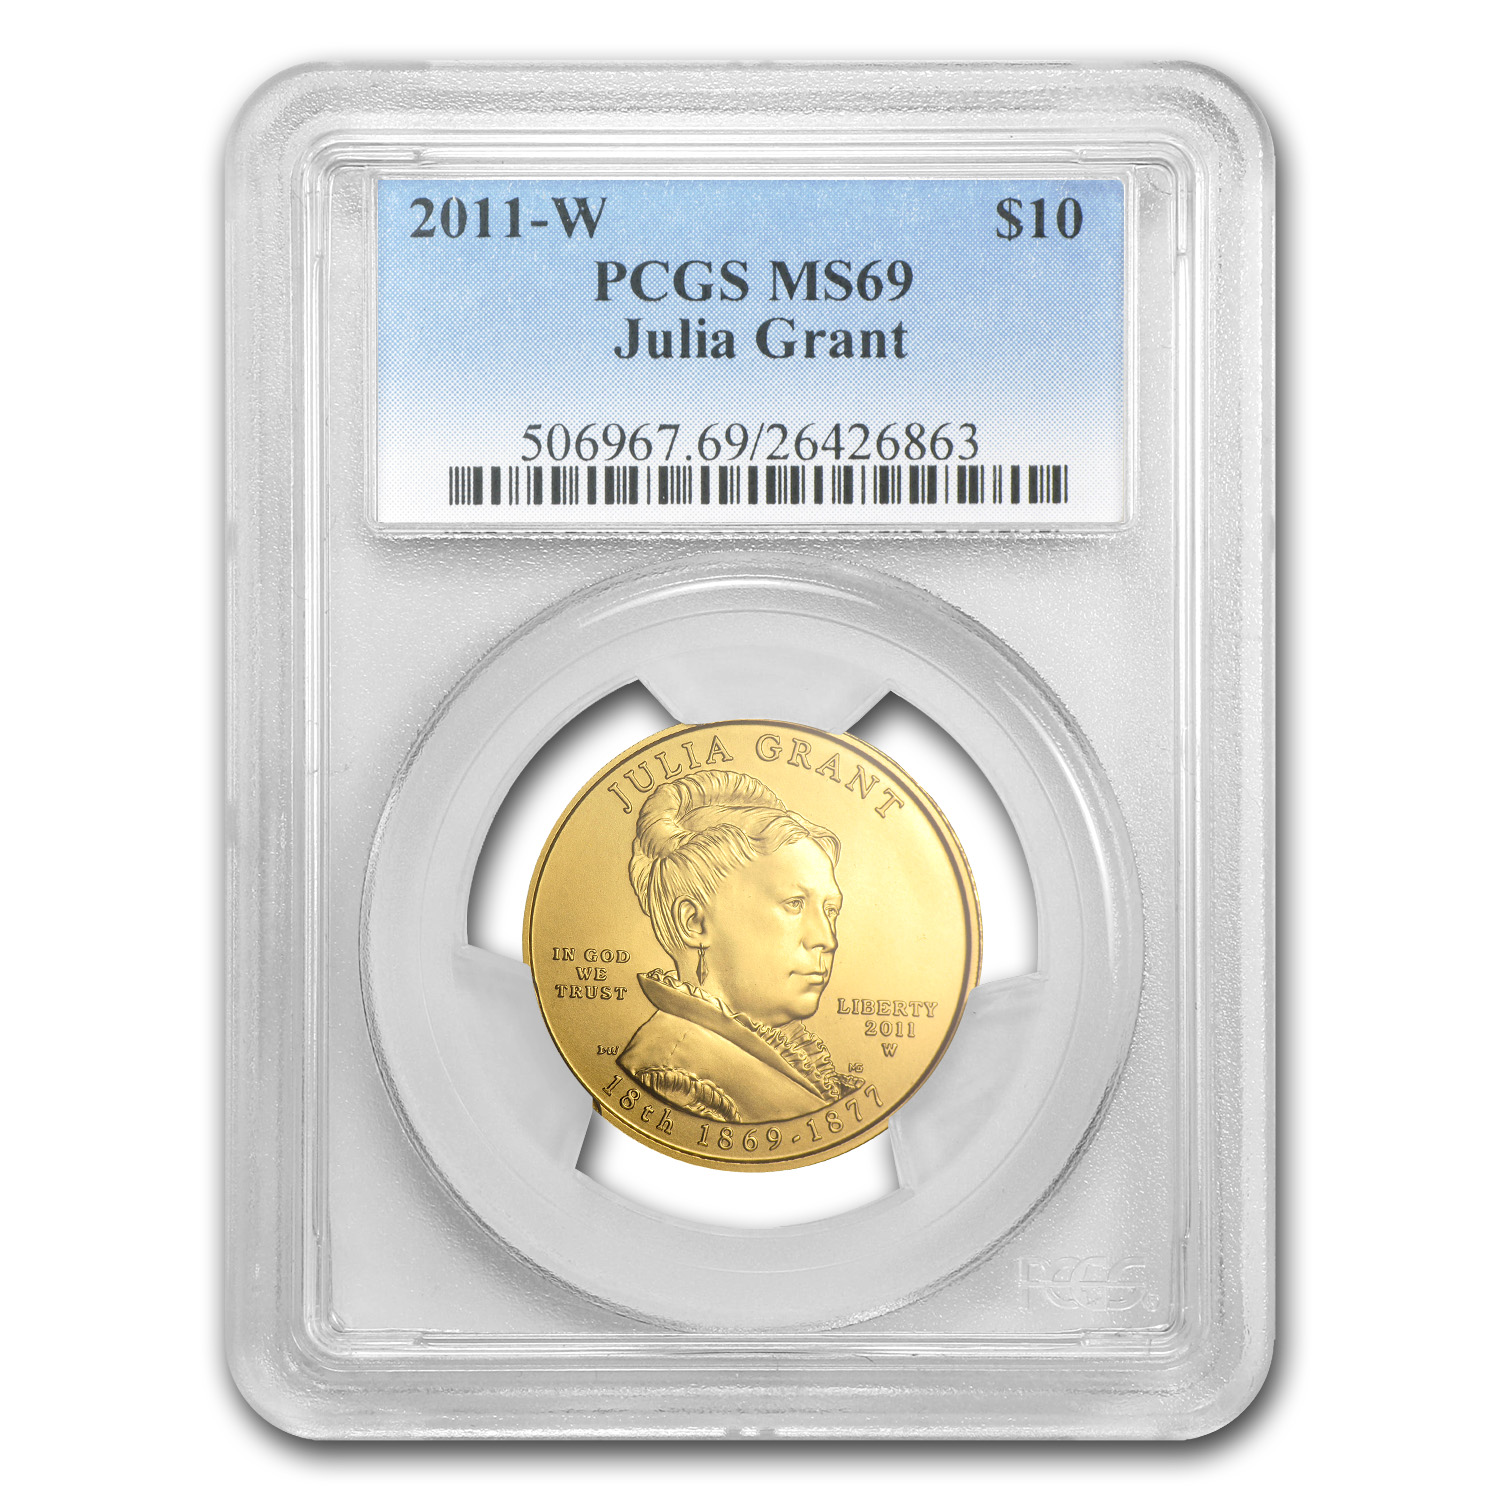 2011-W 1/2 oz Gold Julia Grant MS-69 PCGS